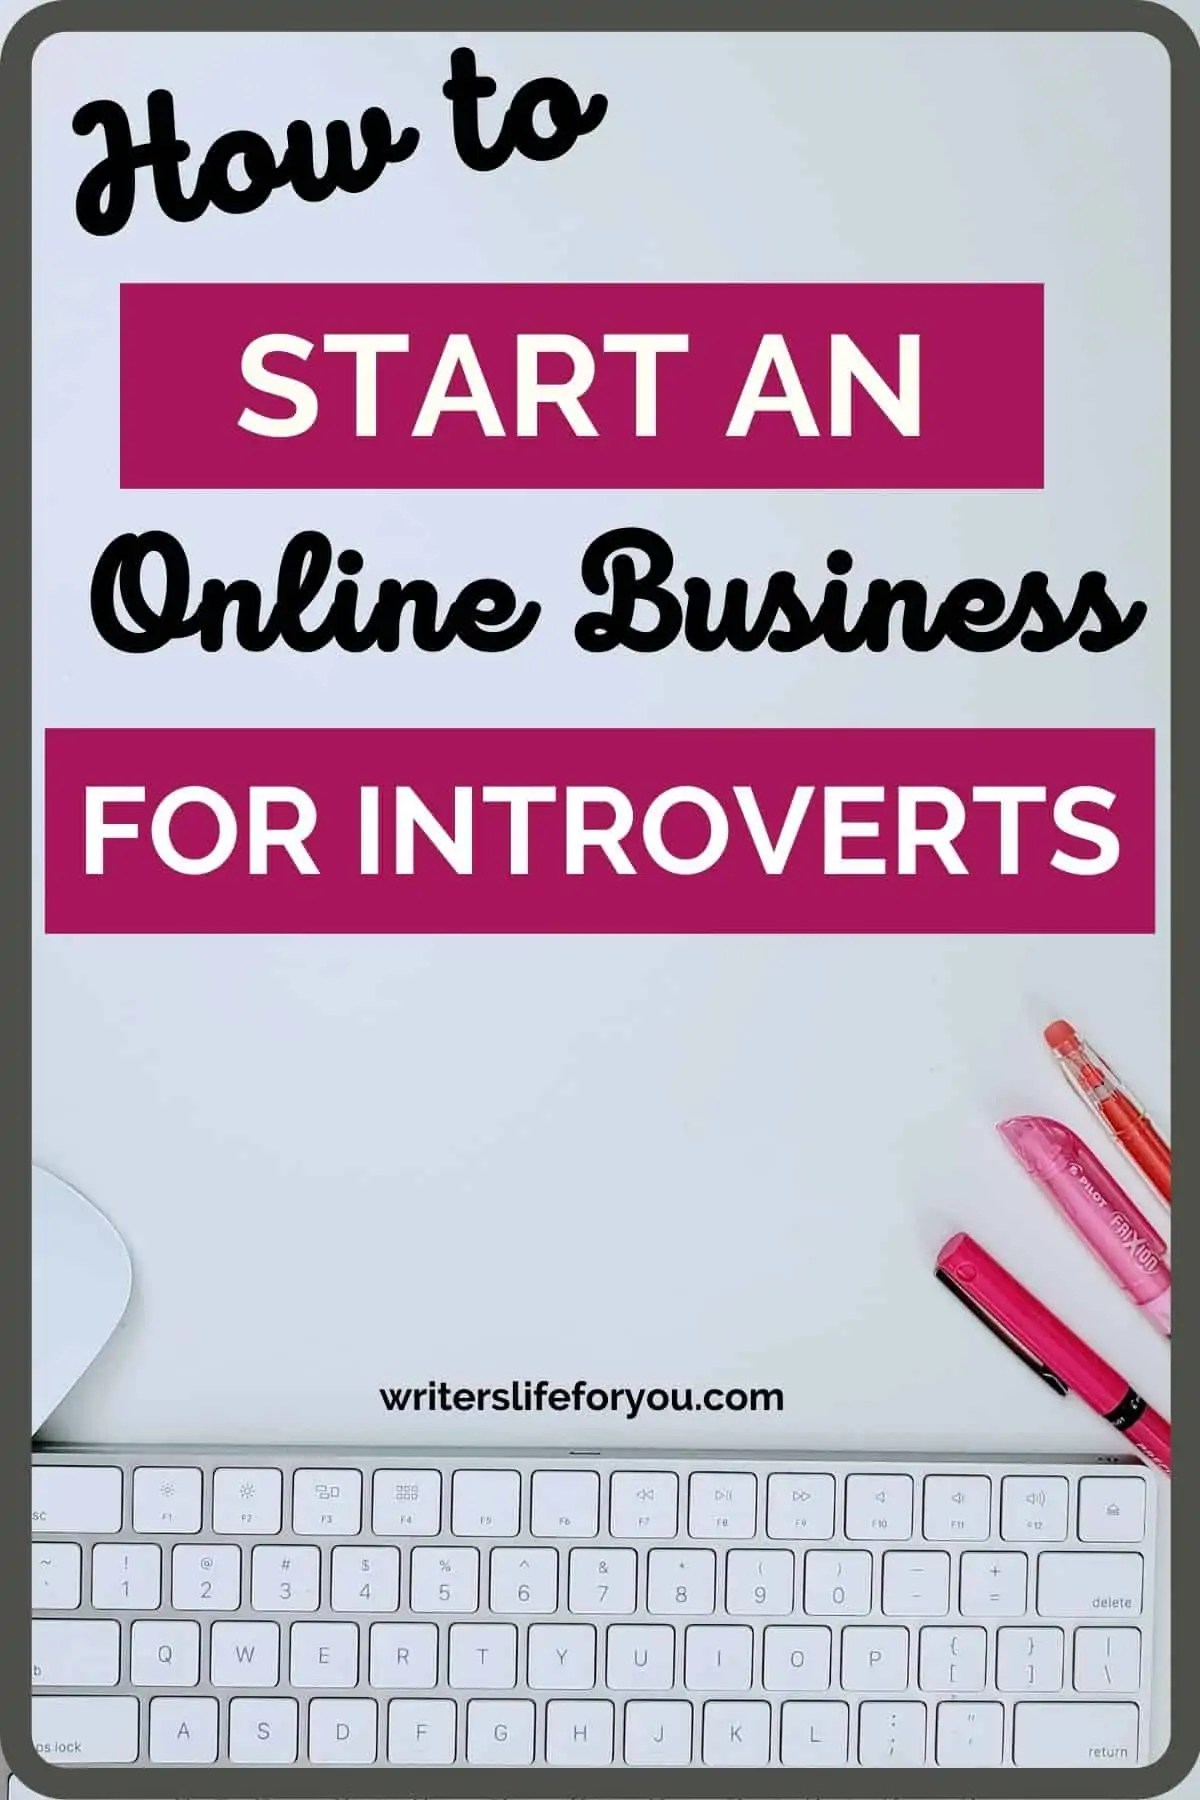 30+ Top Business Ideas for Introverts Who Want to Work From Home